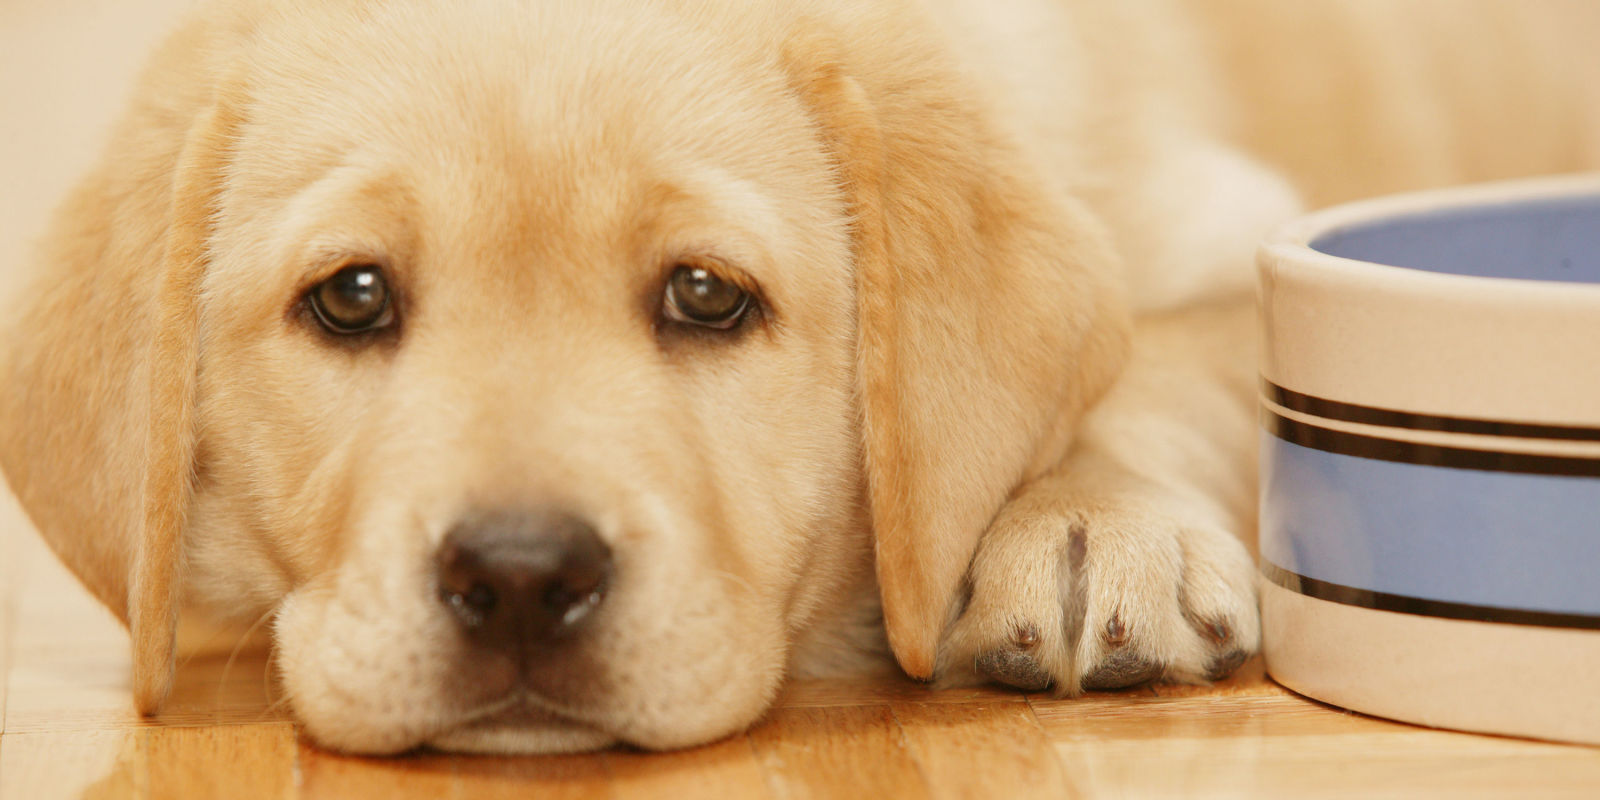 This Is How Your Bad Mood Can Affect Your Dog